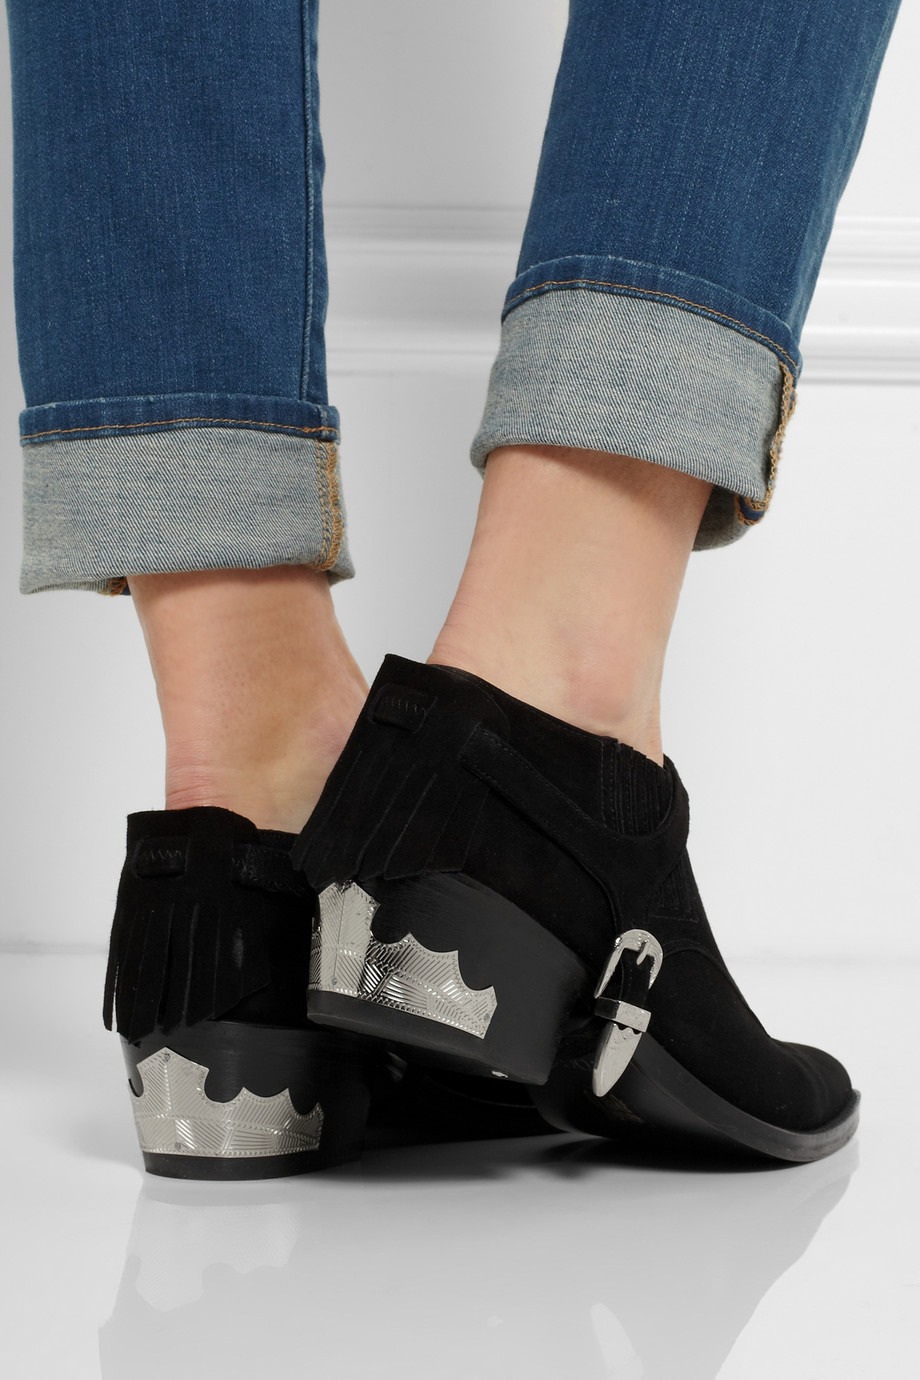 sale online shopping TOGA PULLA Ankle boots store for sale free shipping FLcYWDPCmb